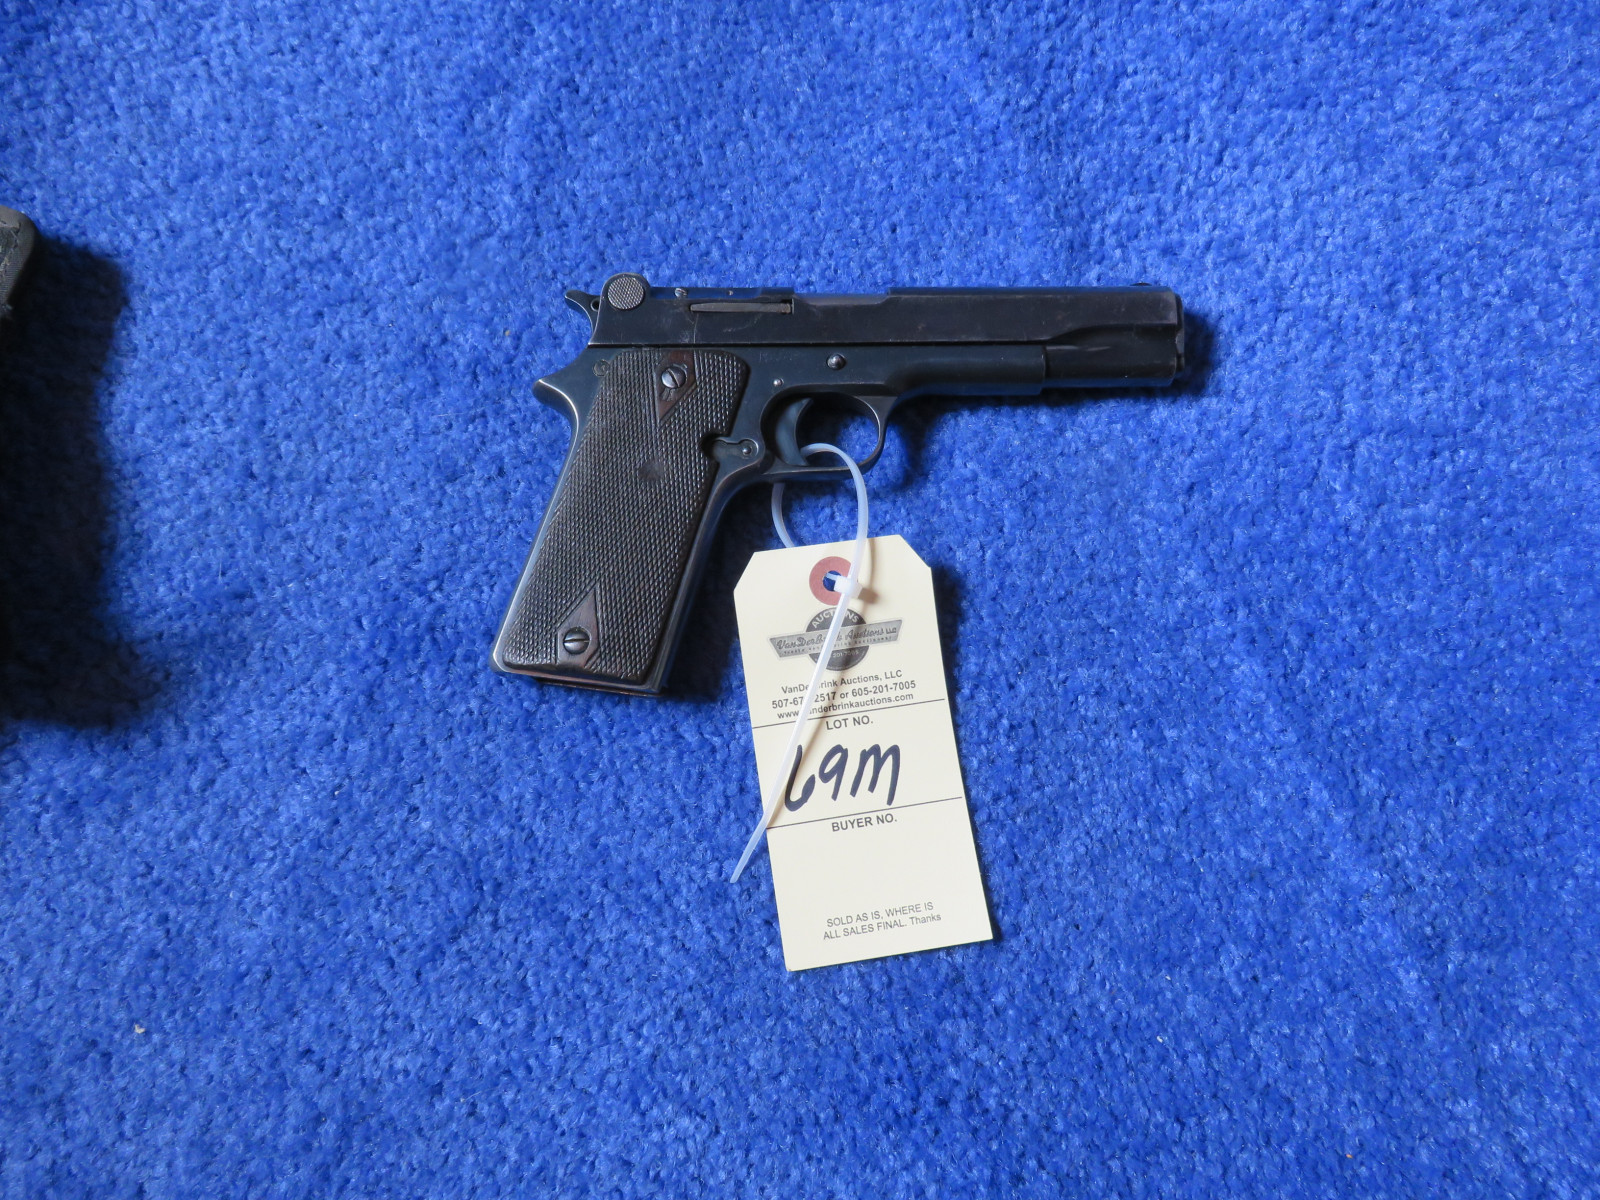 1921 Bonifacio Star 9MM Semi-Automatic Handgun - Image 1